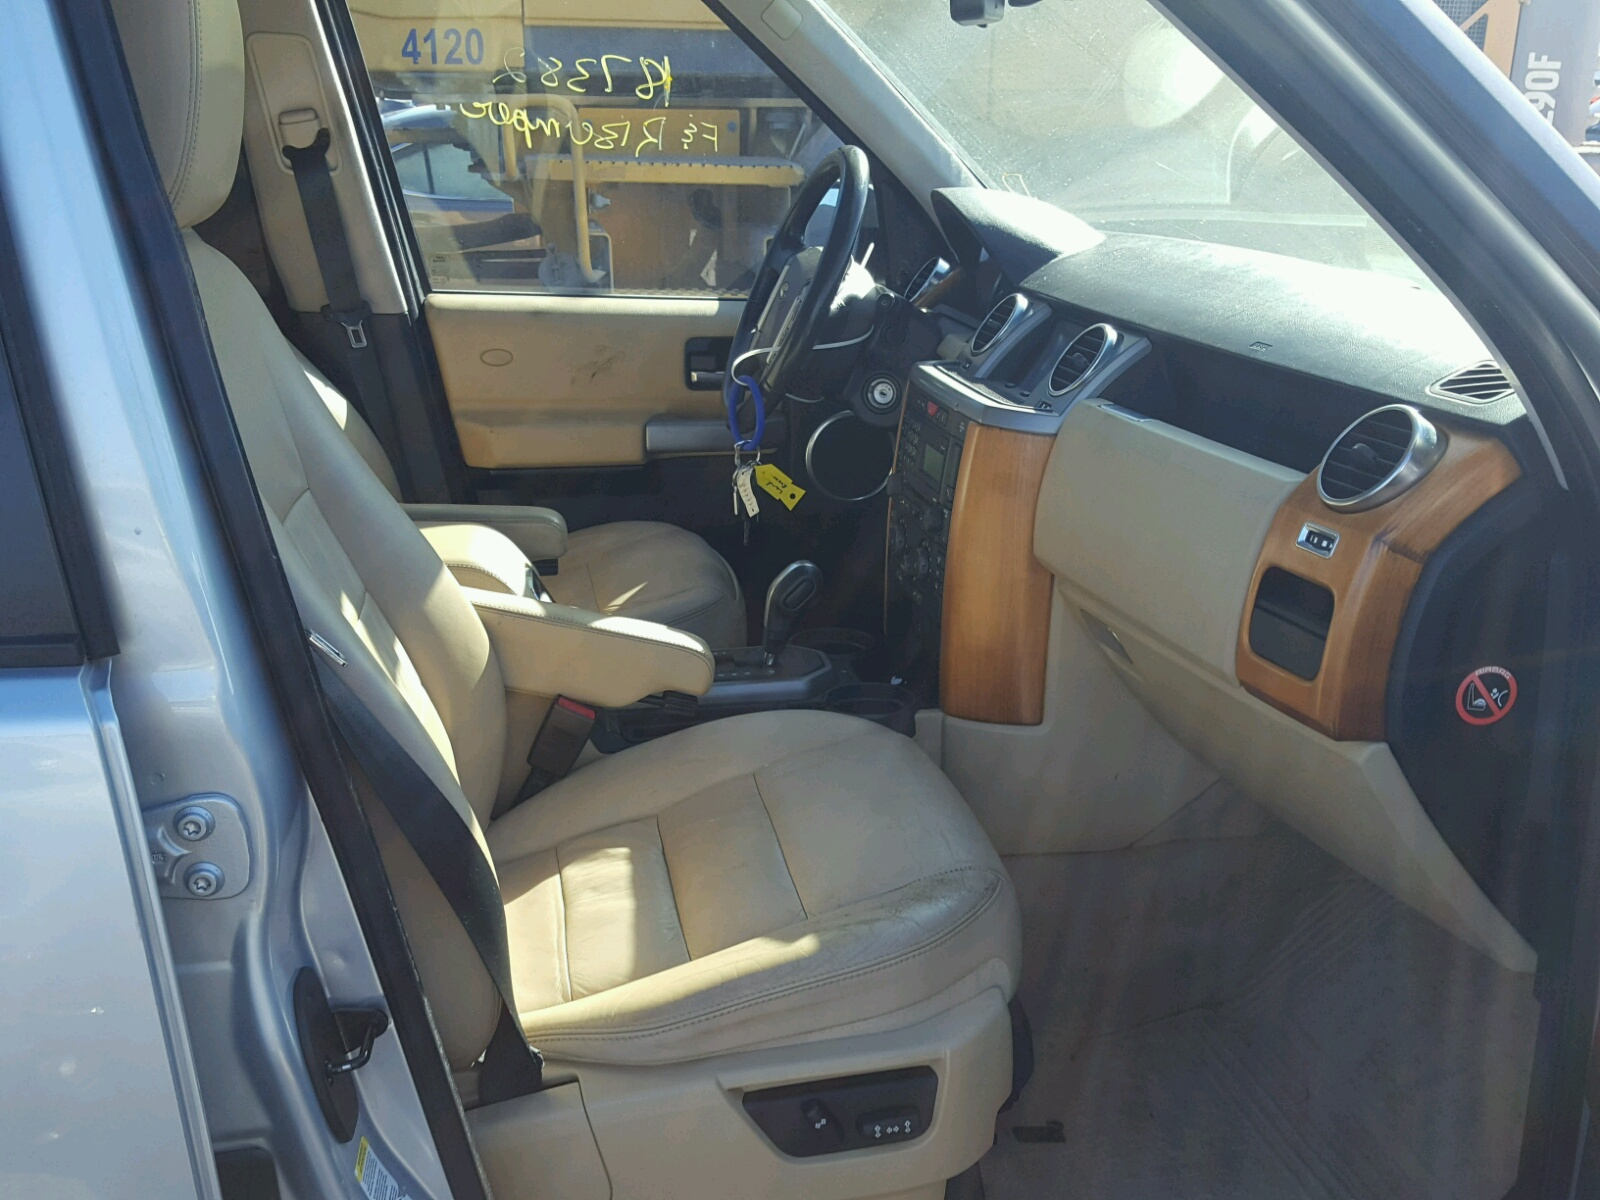 title auto landrover for sale salvage black auctions online on land ia rover in des cert moines lot hse of copart up view carfinder en close